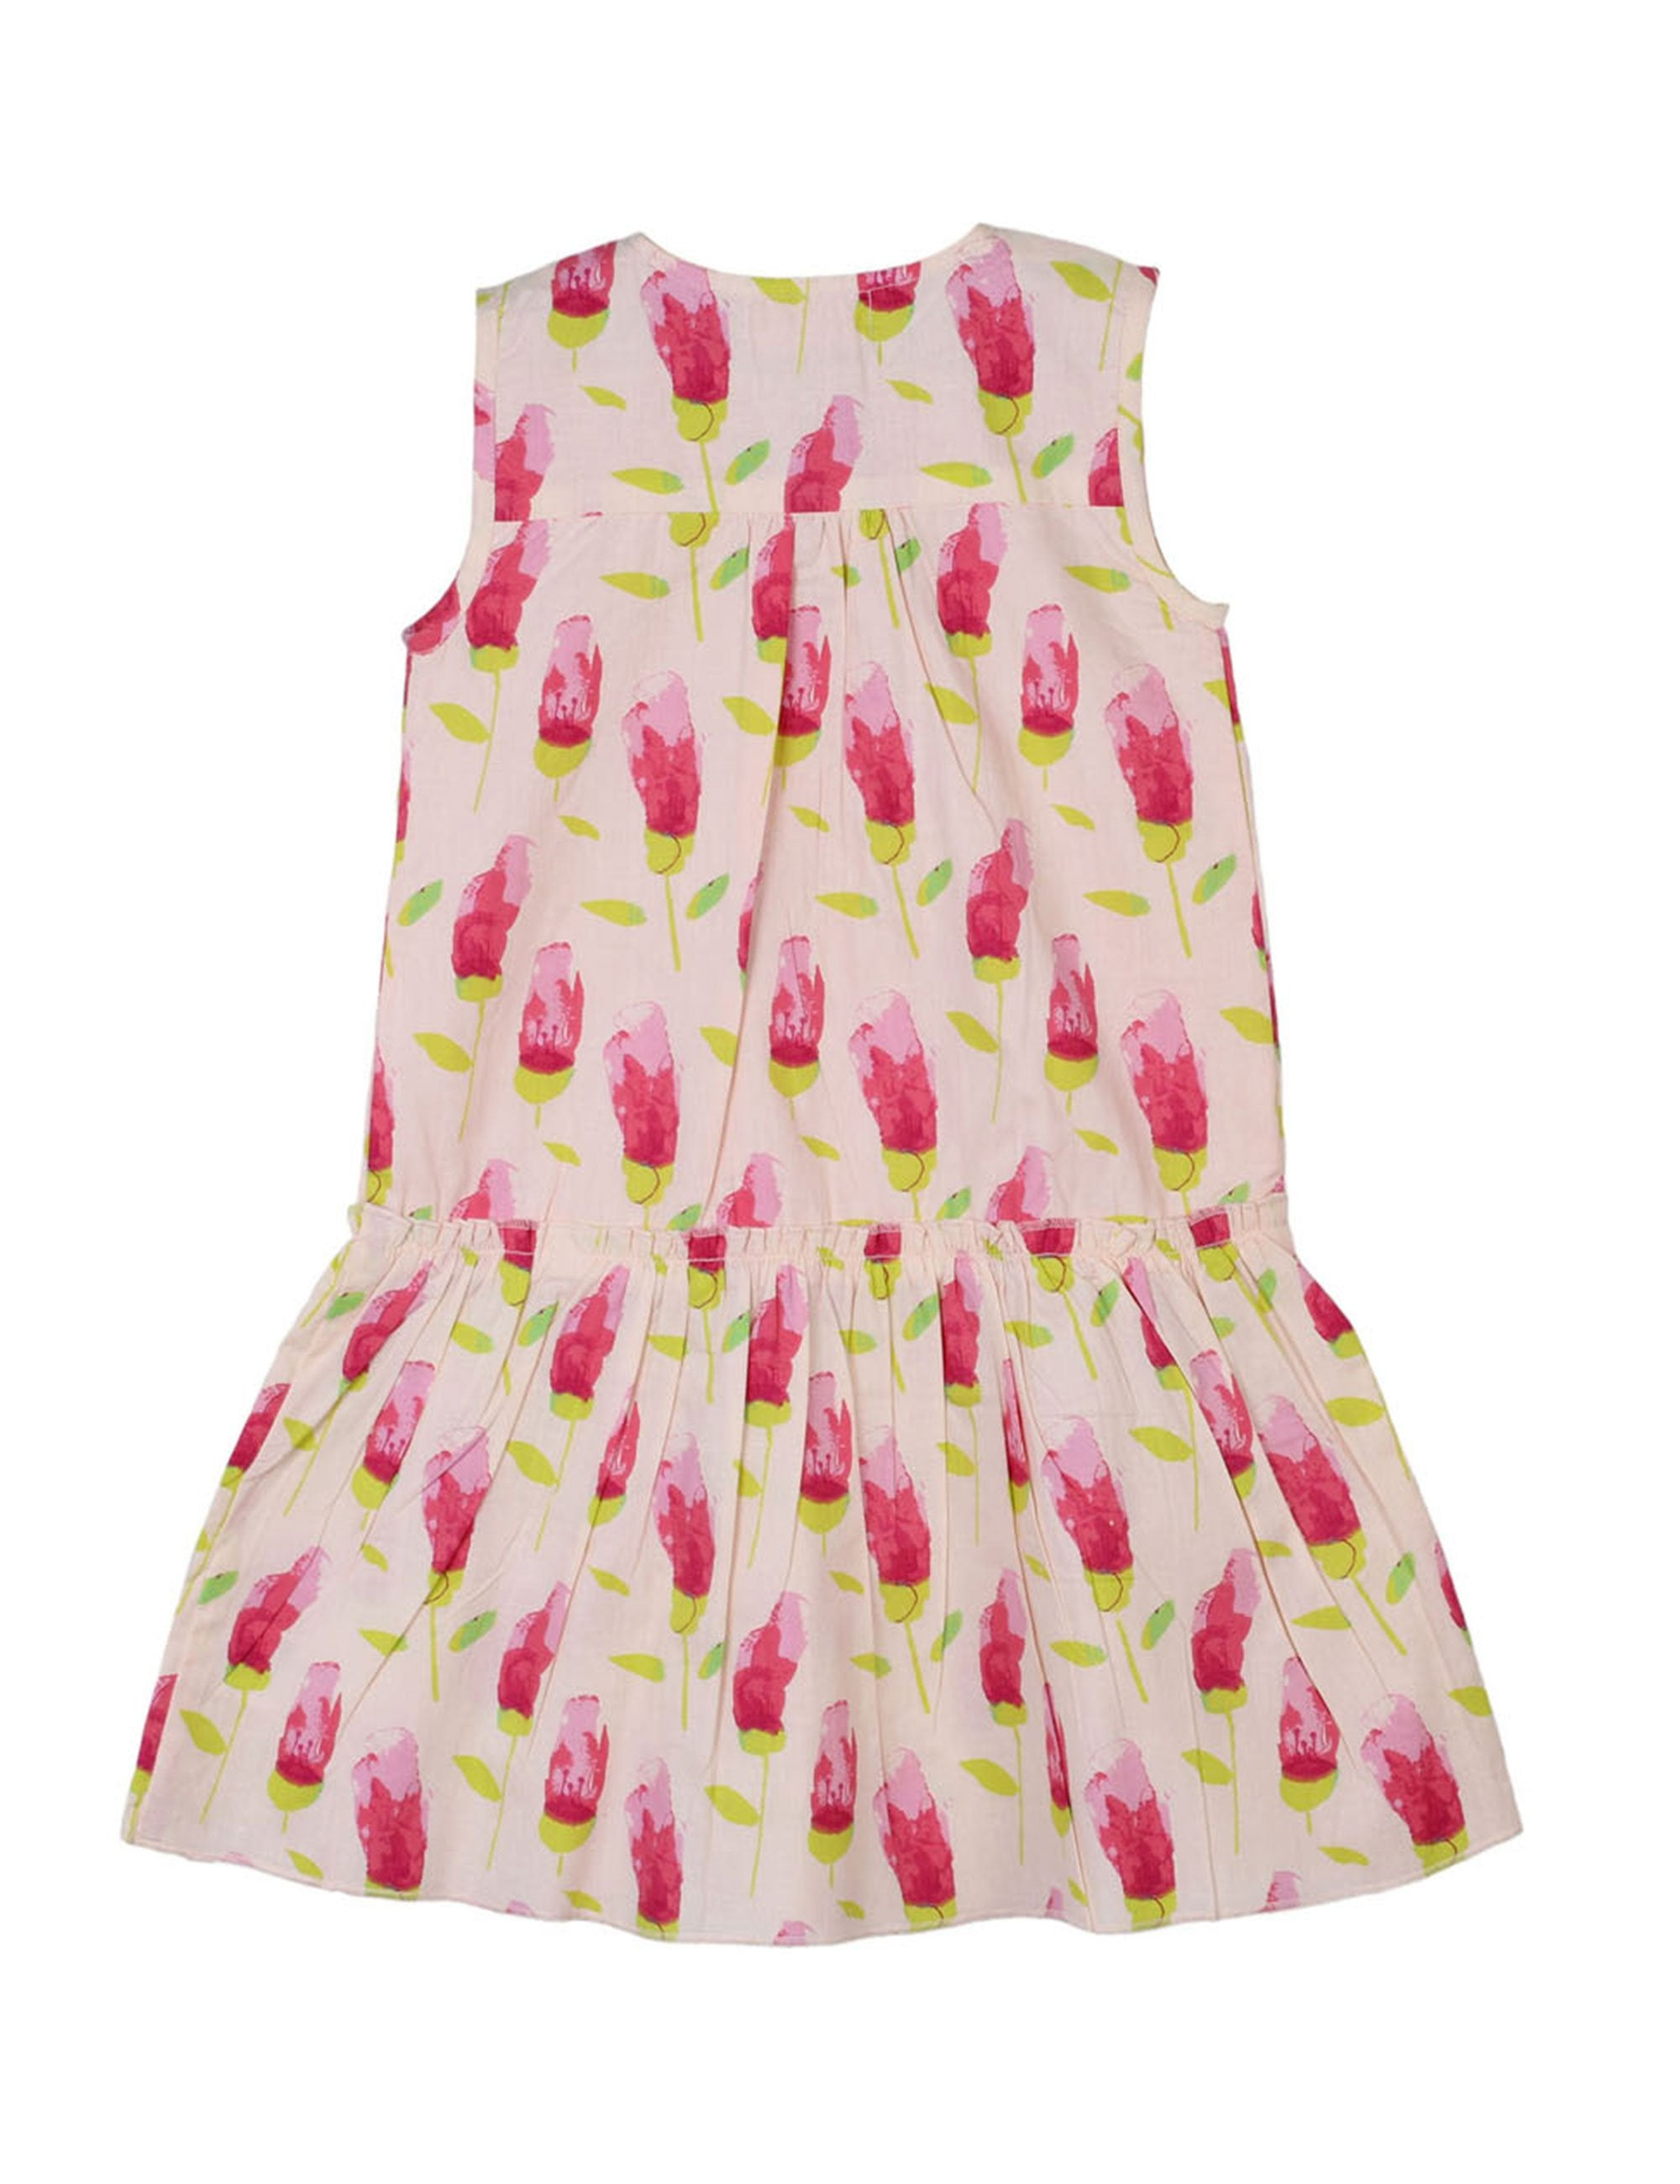 Printed Drop Waist Dress in Pink Colour for Girls